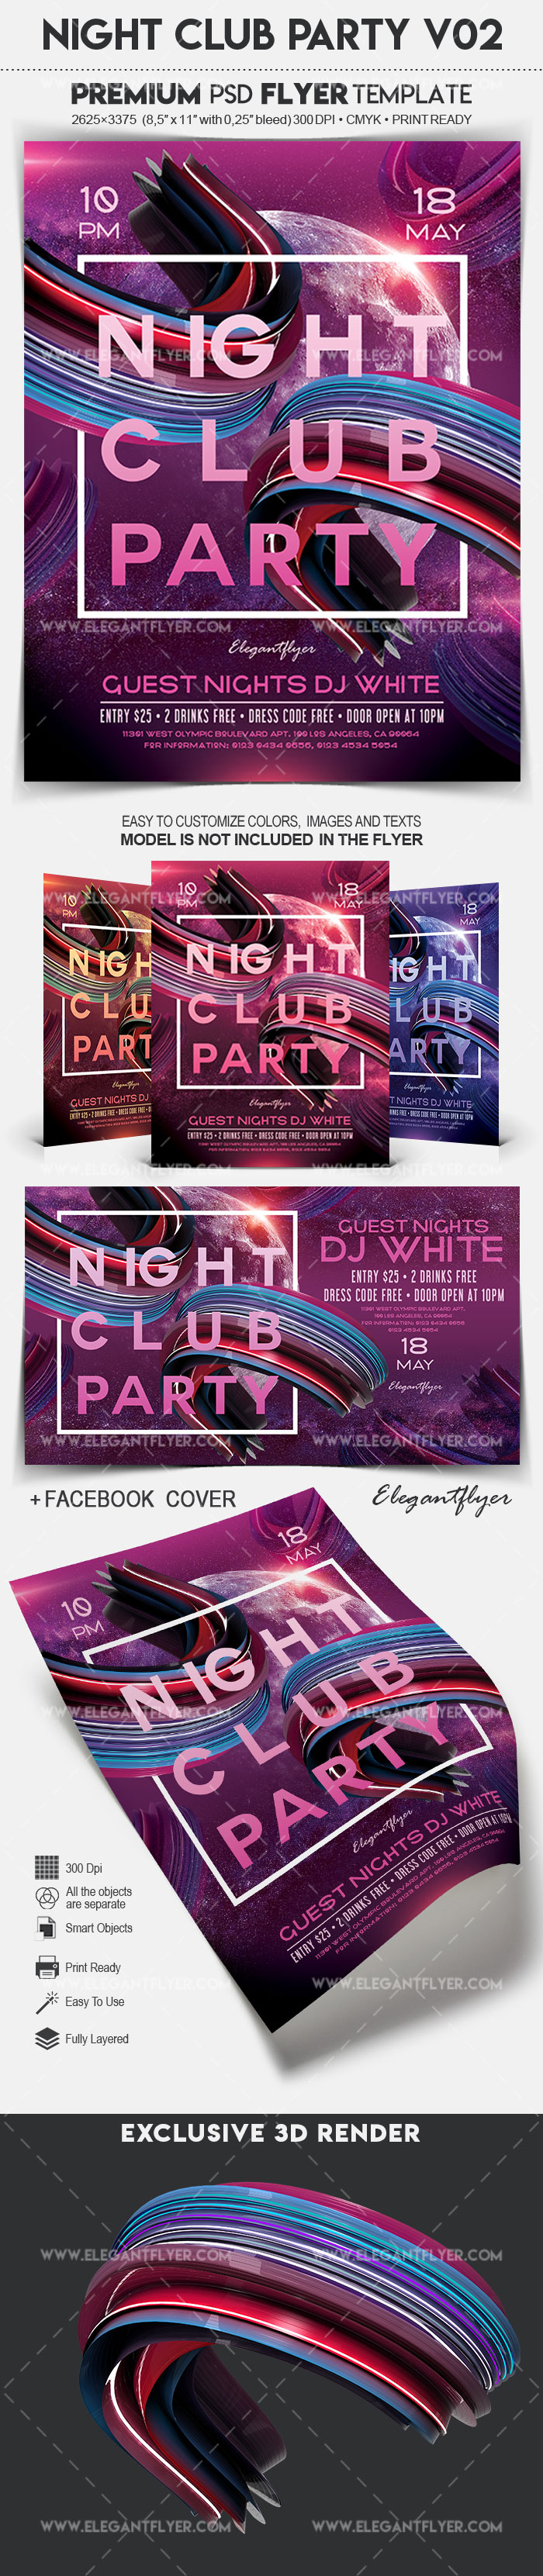 Night Club Party V02 – Flyer PSD Template